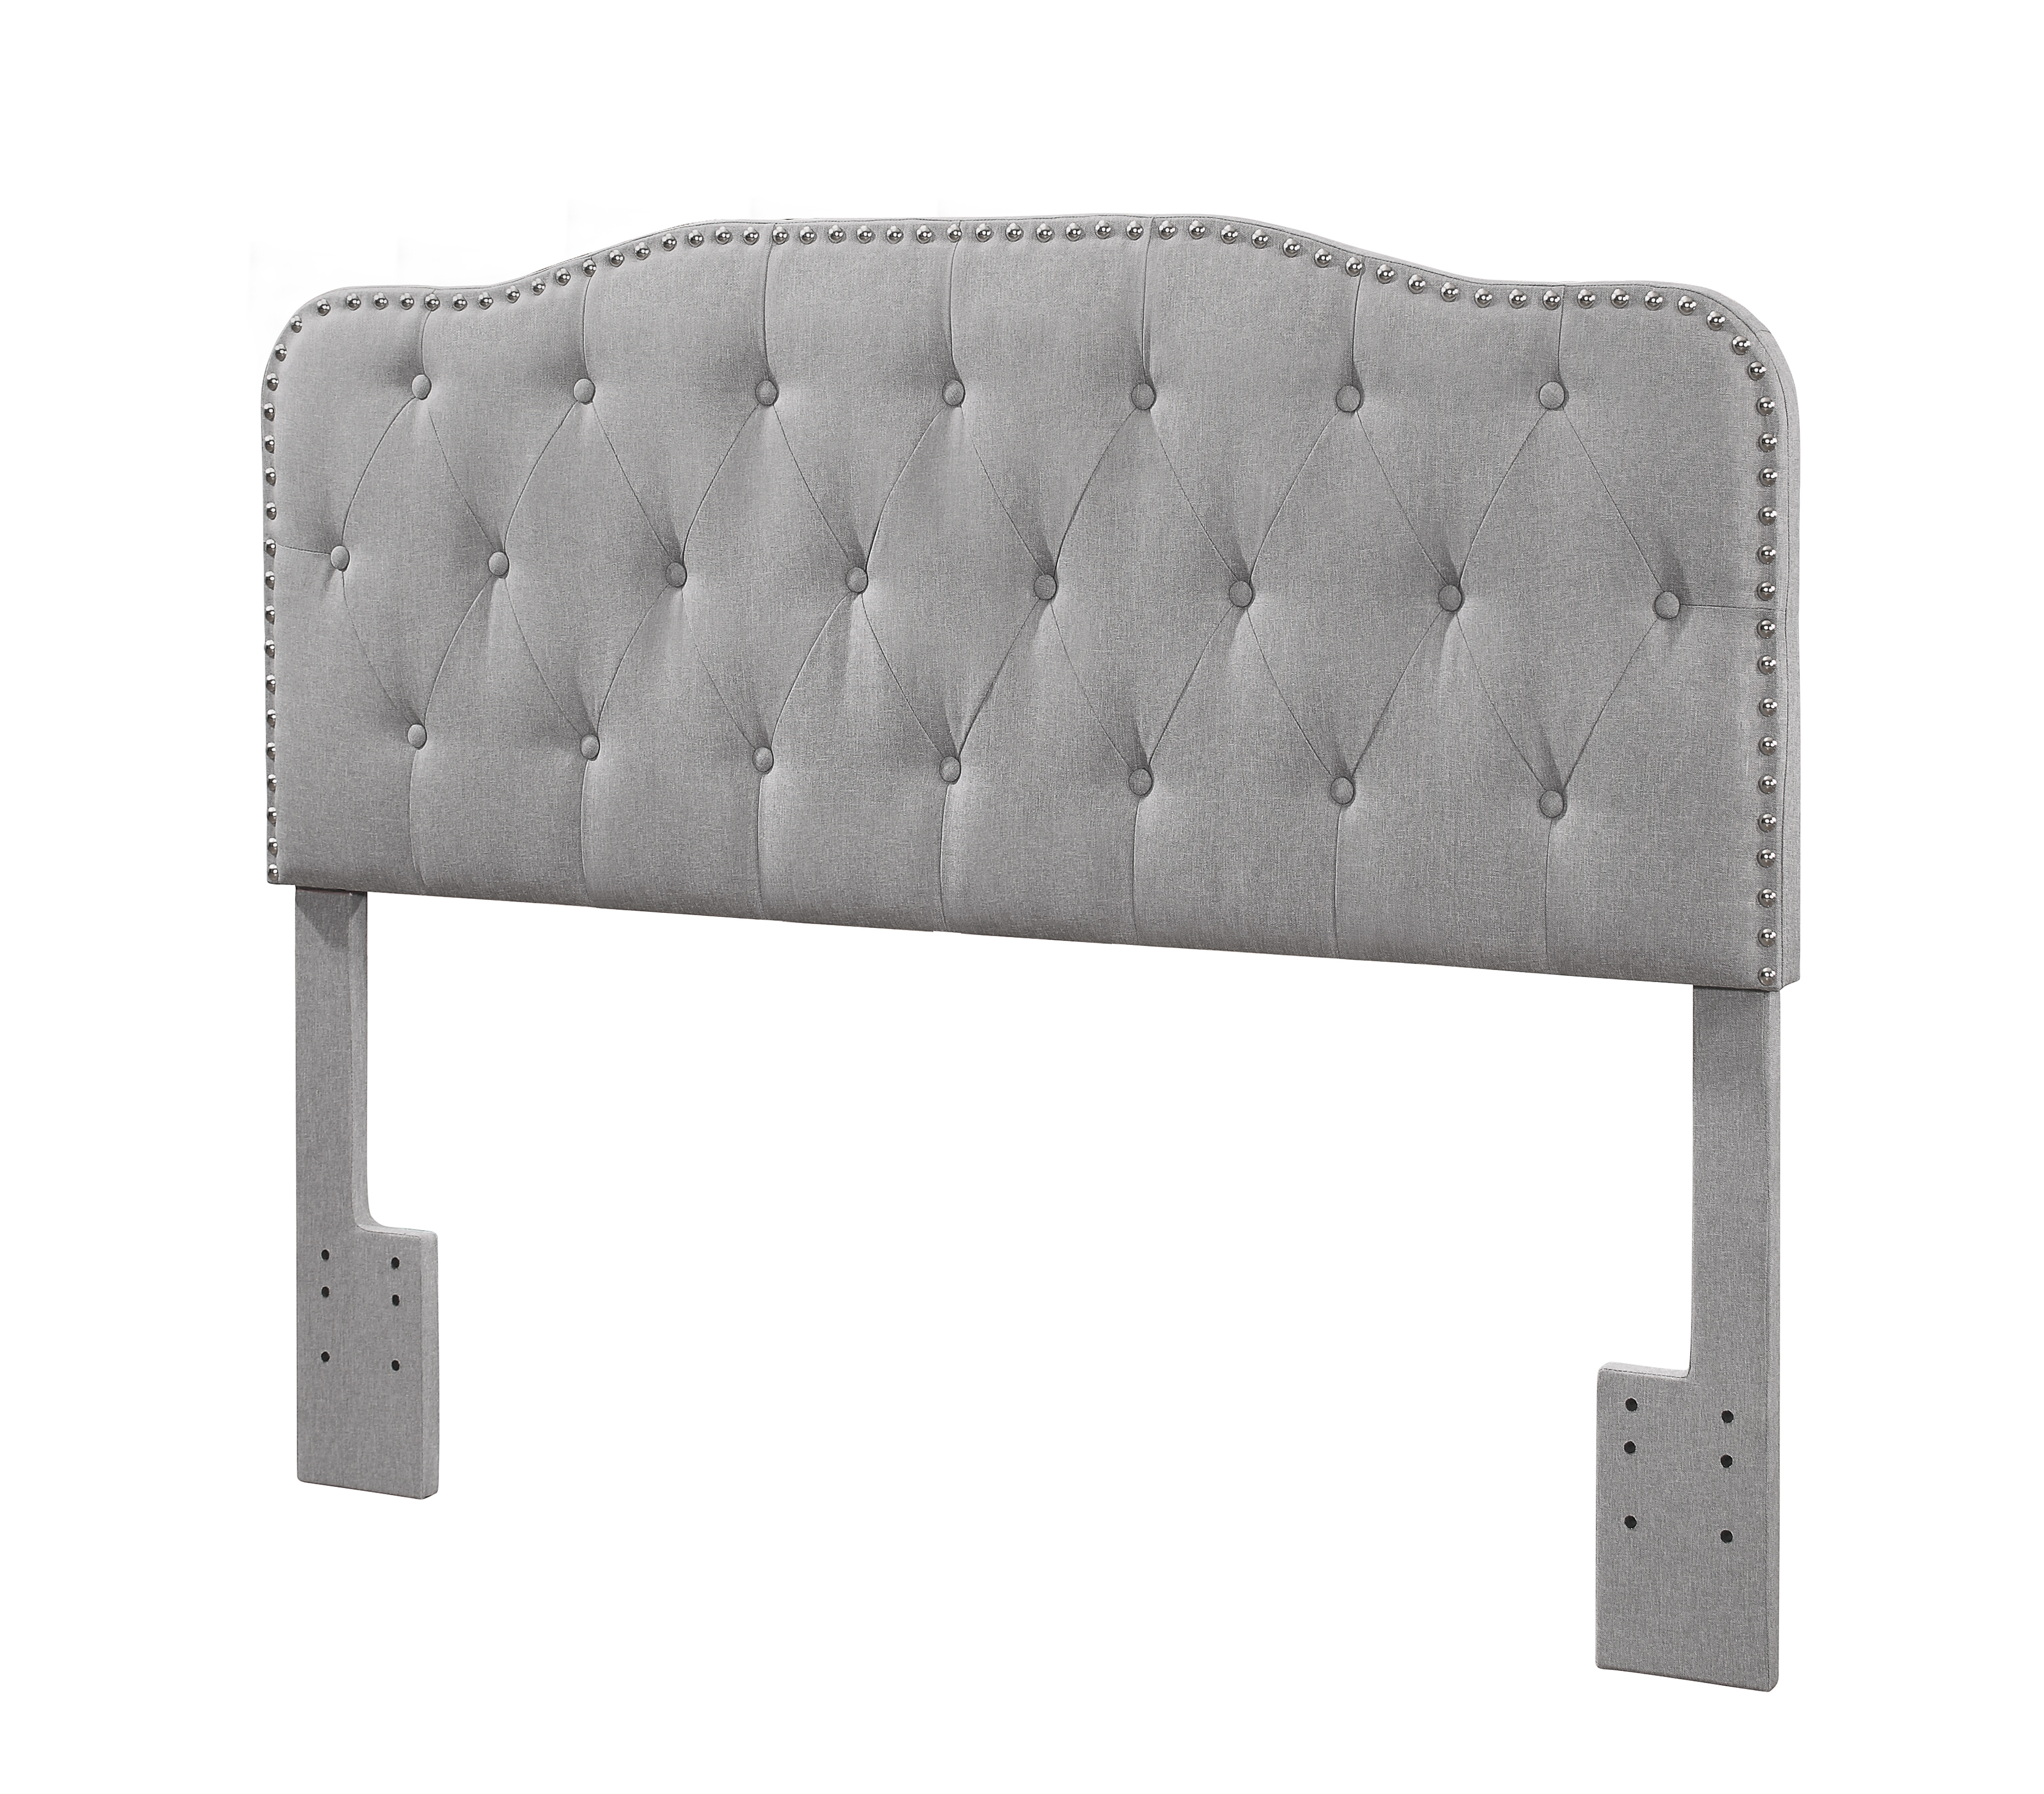 Best Quality Furniture Linen Panel Headboard Queen Or Full Size Bed Frame Multiple Colors